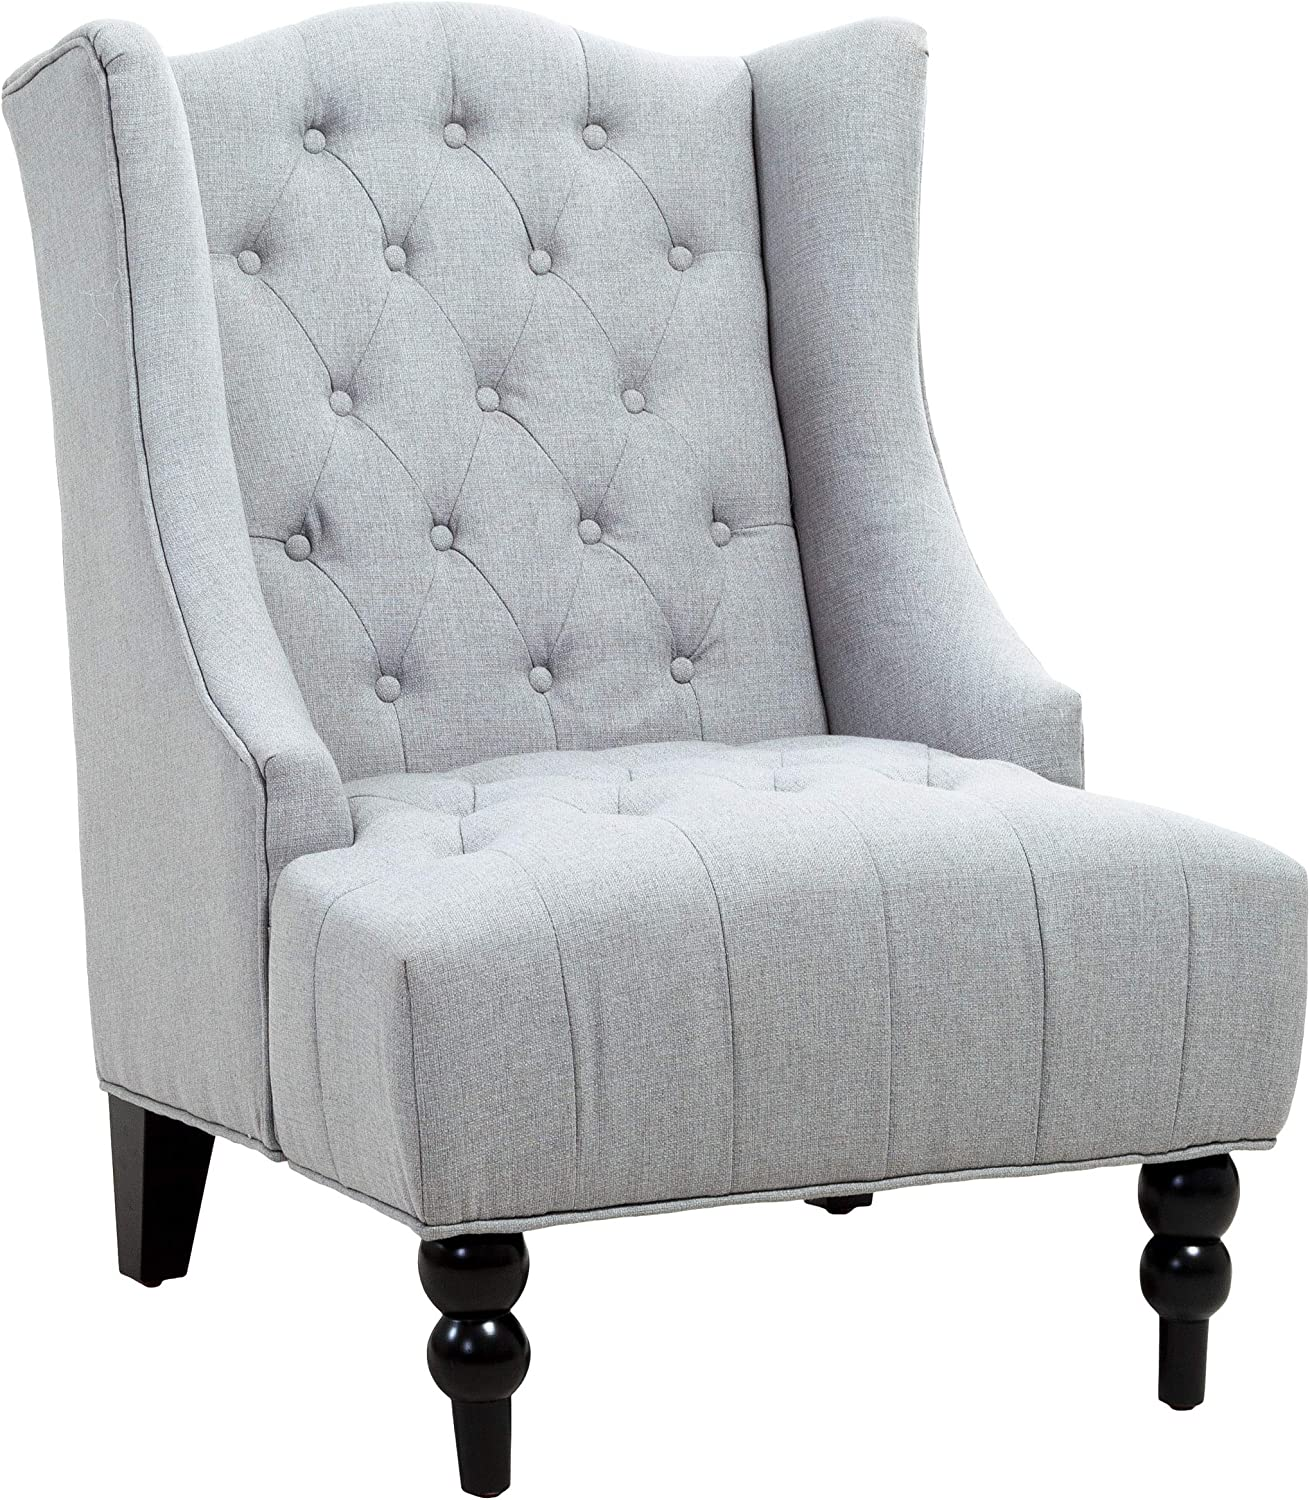 Christopher Knight Home Toddman High Back Chair, Silver